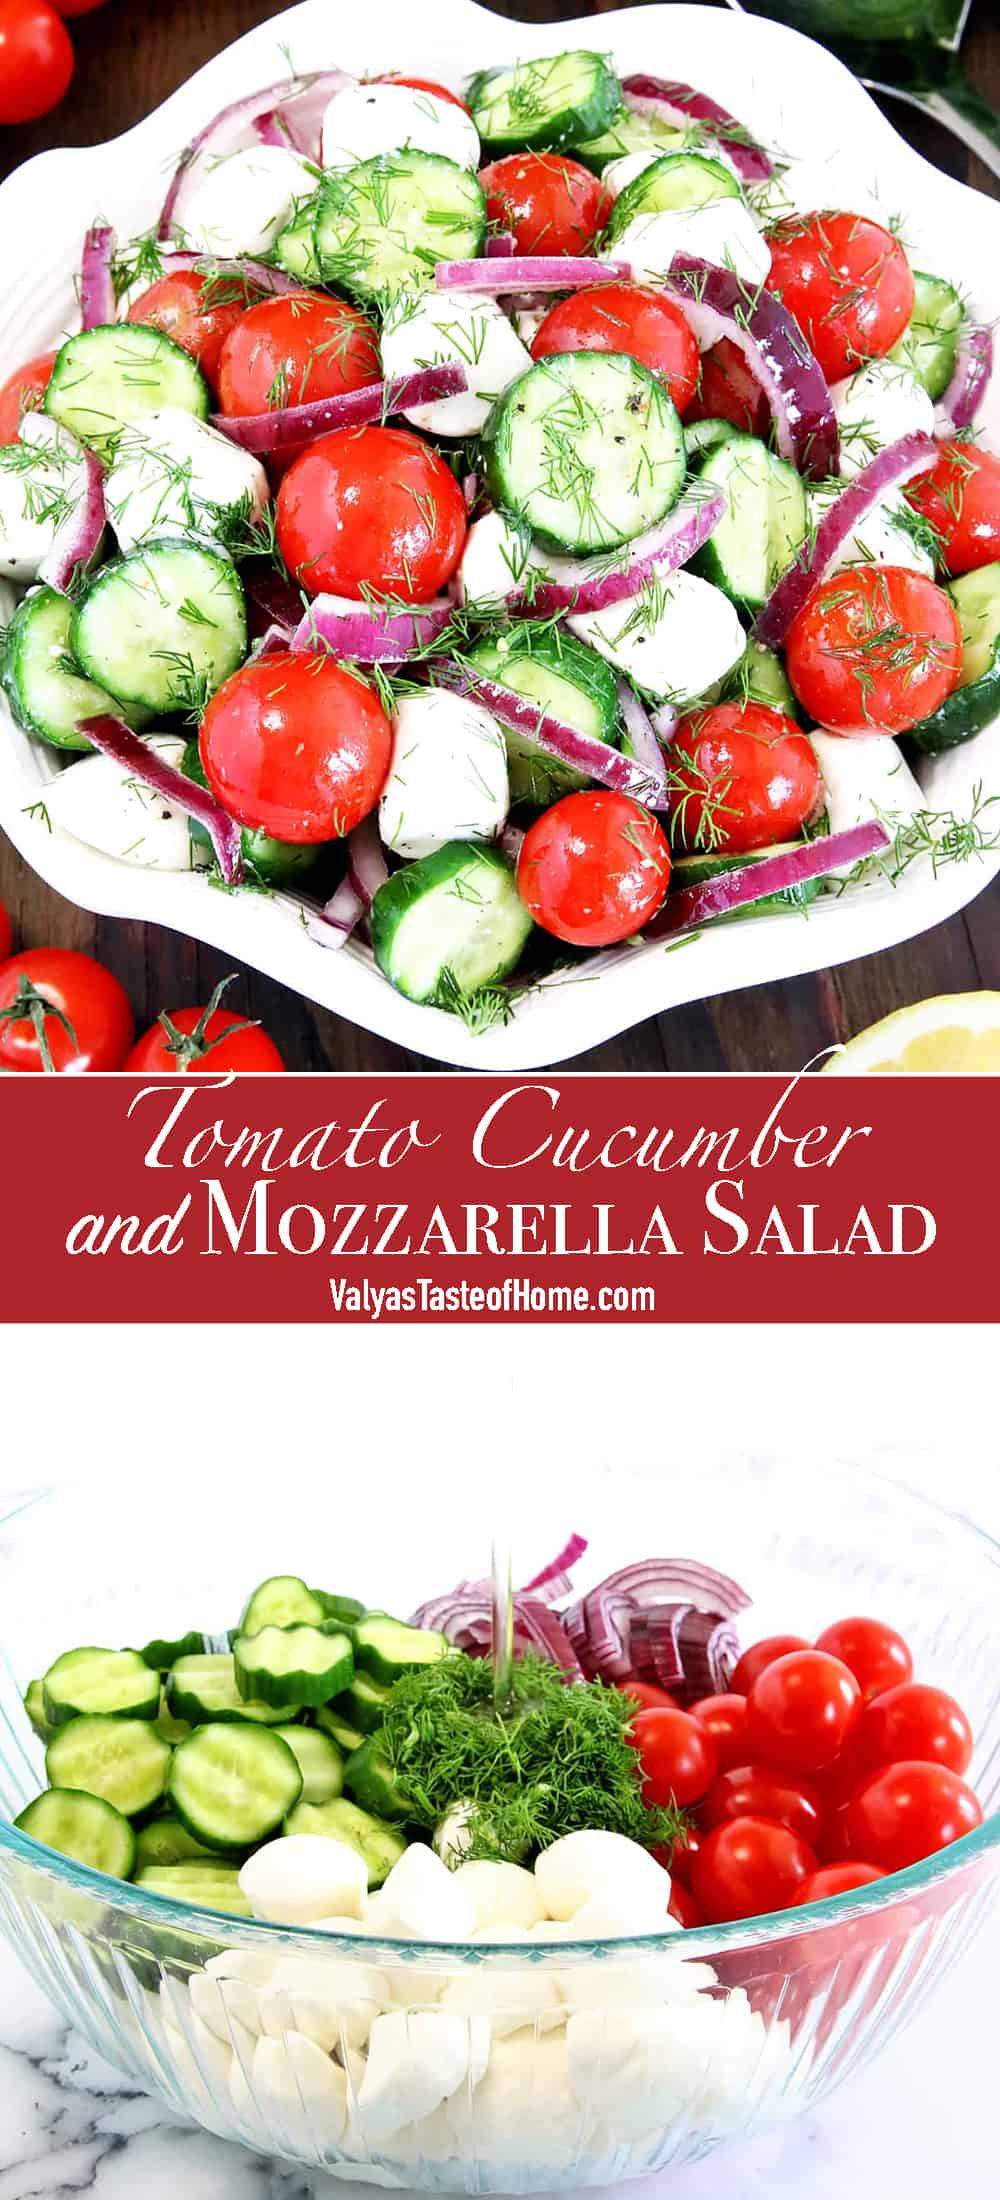 Crunchy, soft, sharp, smooth, aromatic, and savory! Everything a good, satisfying salad should be when you want something refreshing with a touch of cushy. It is well-loved by both children and adults, which makes it an easy go-to recipe for the cook.